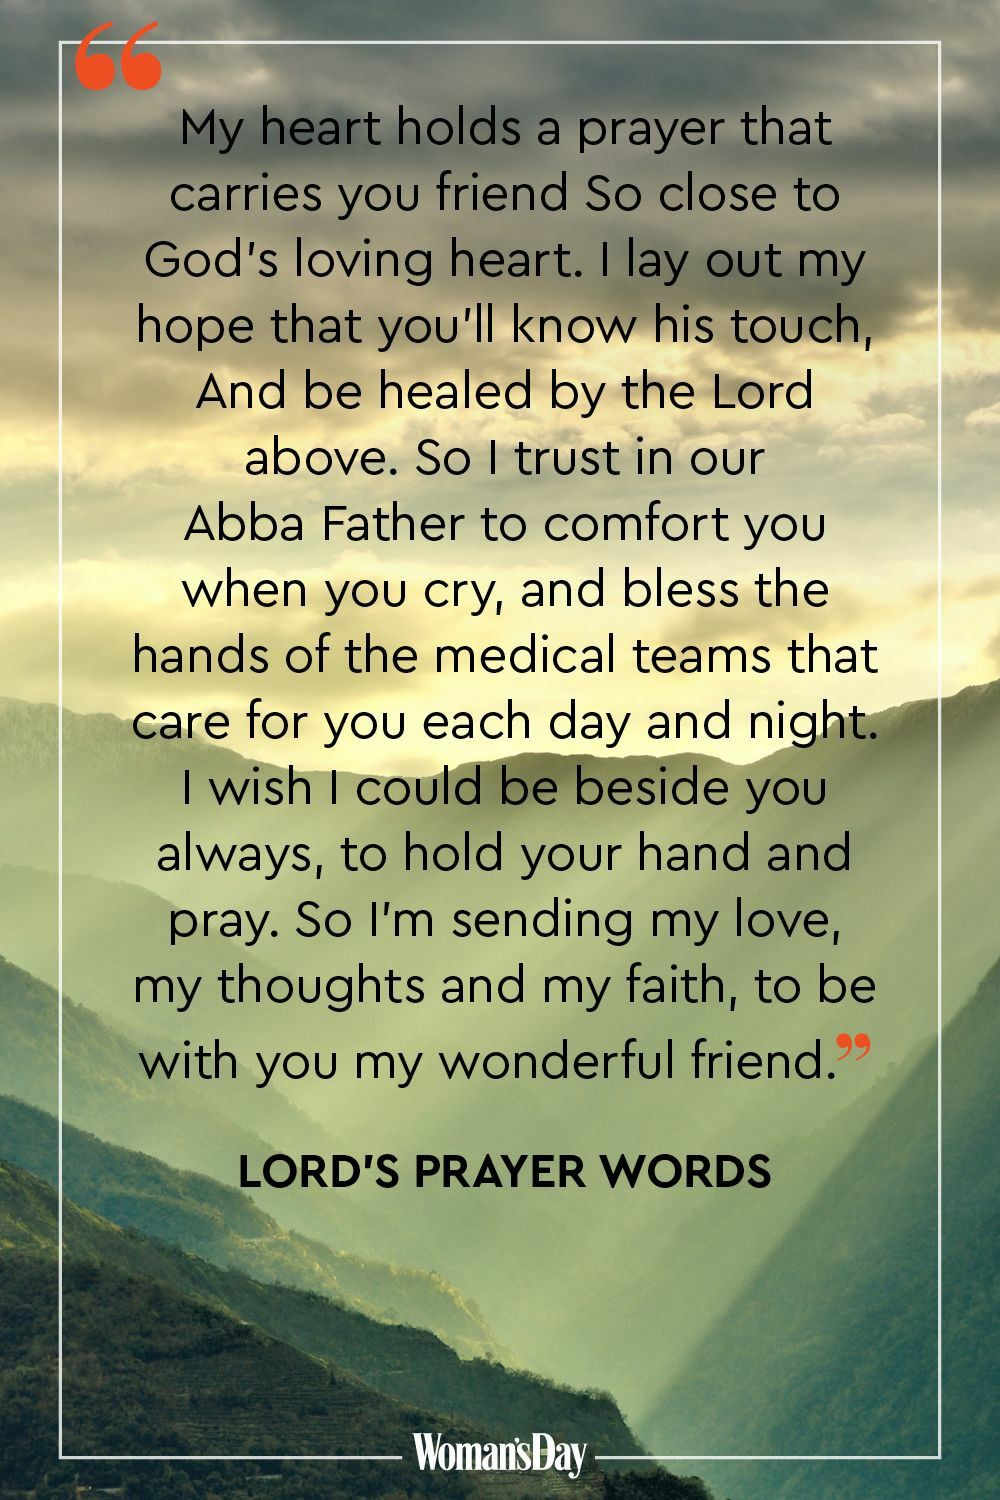 Pin by connie oneil on life is in 2020 Prayer for the